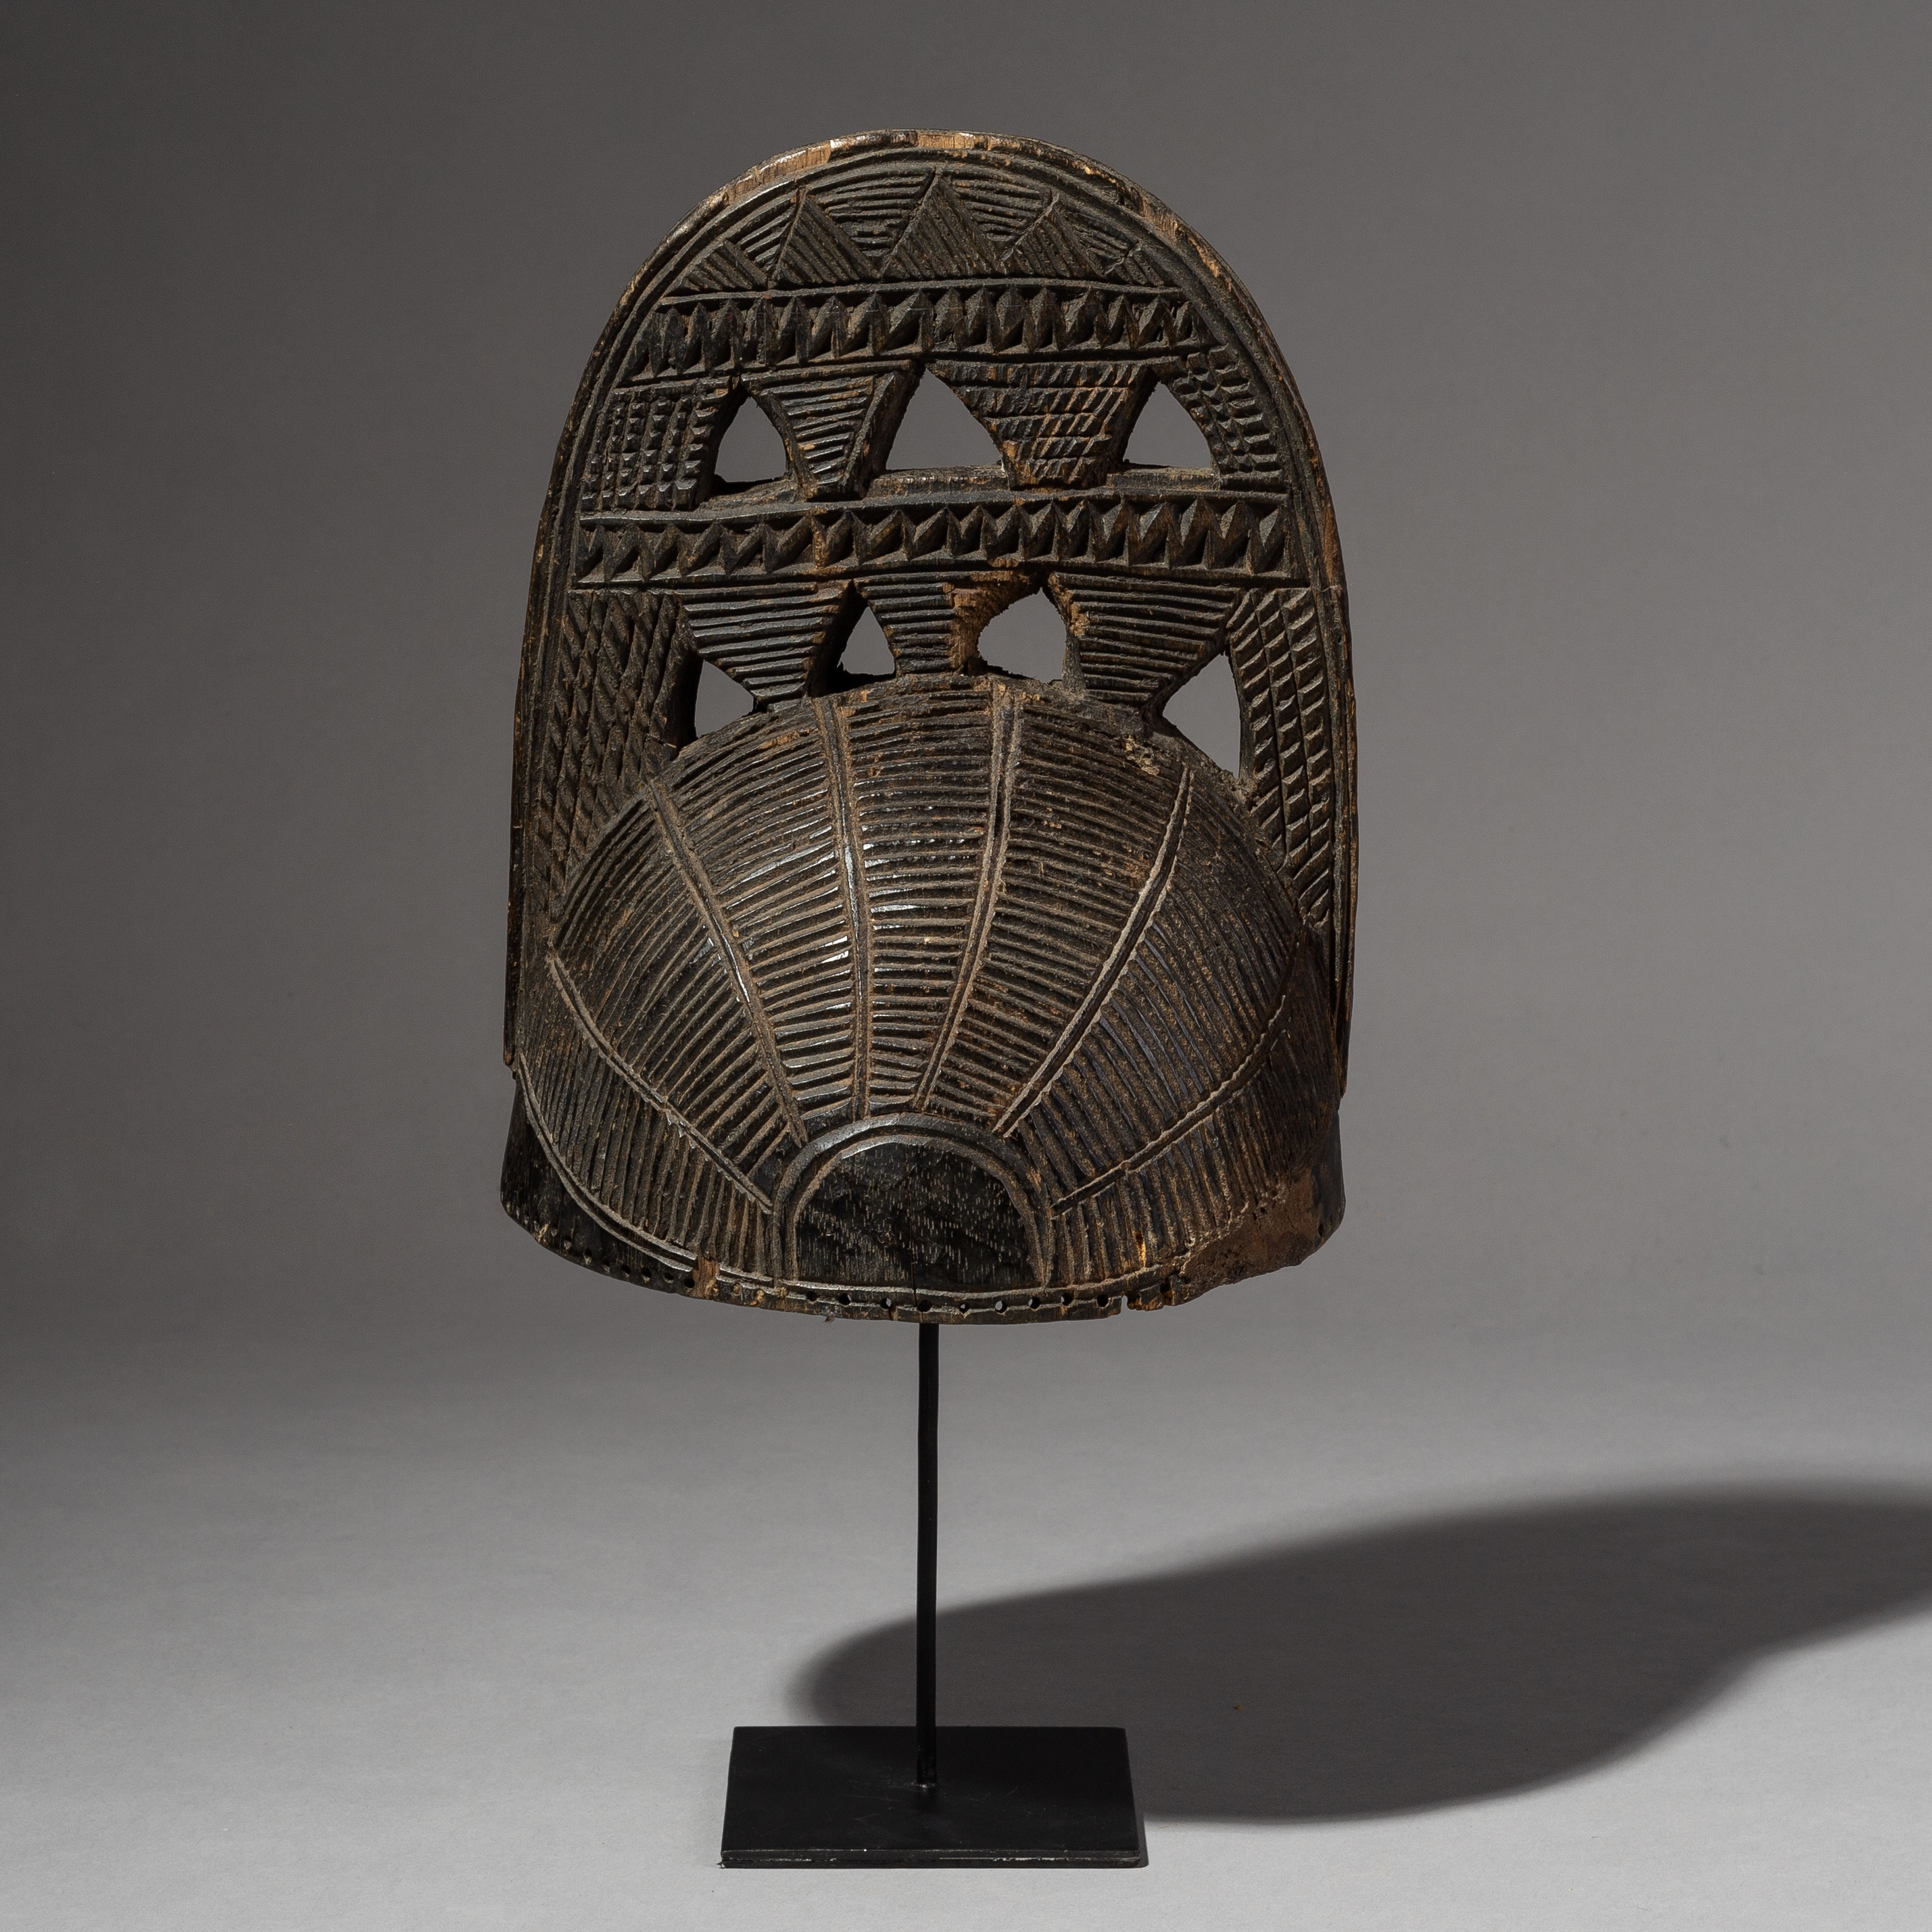 A FINELY ENGRAVED YORUBA WOODEN CEREMONIAL HAT FROM NIGERIA ( No 2007 )